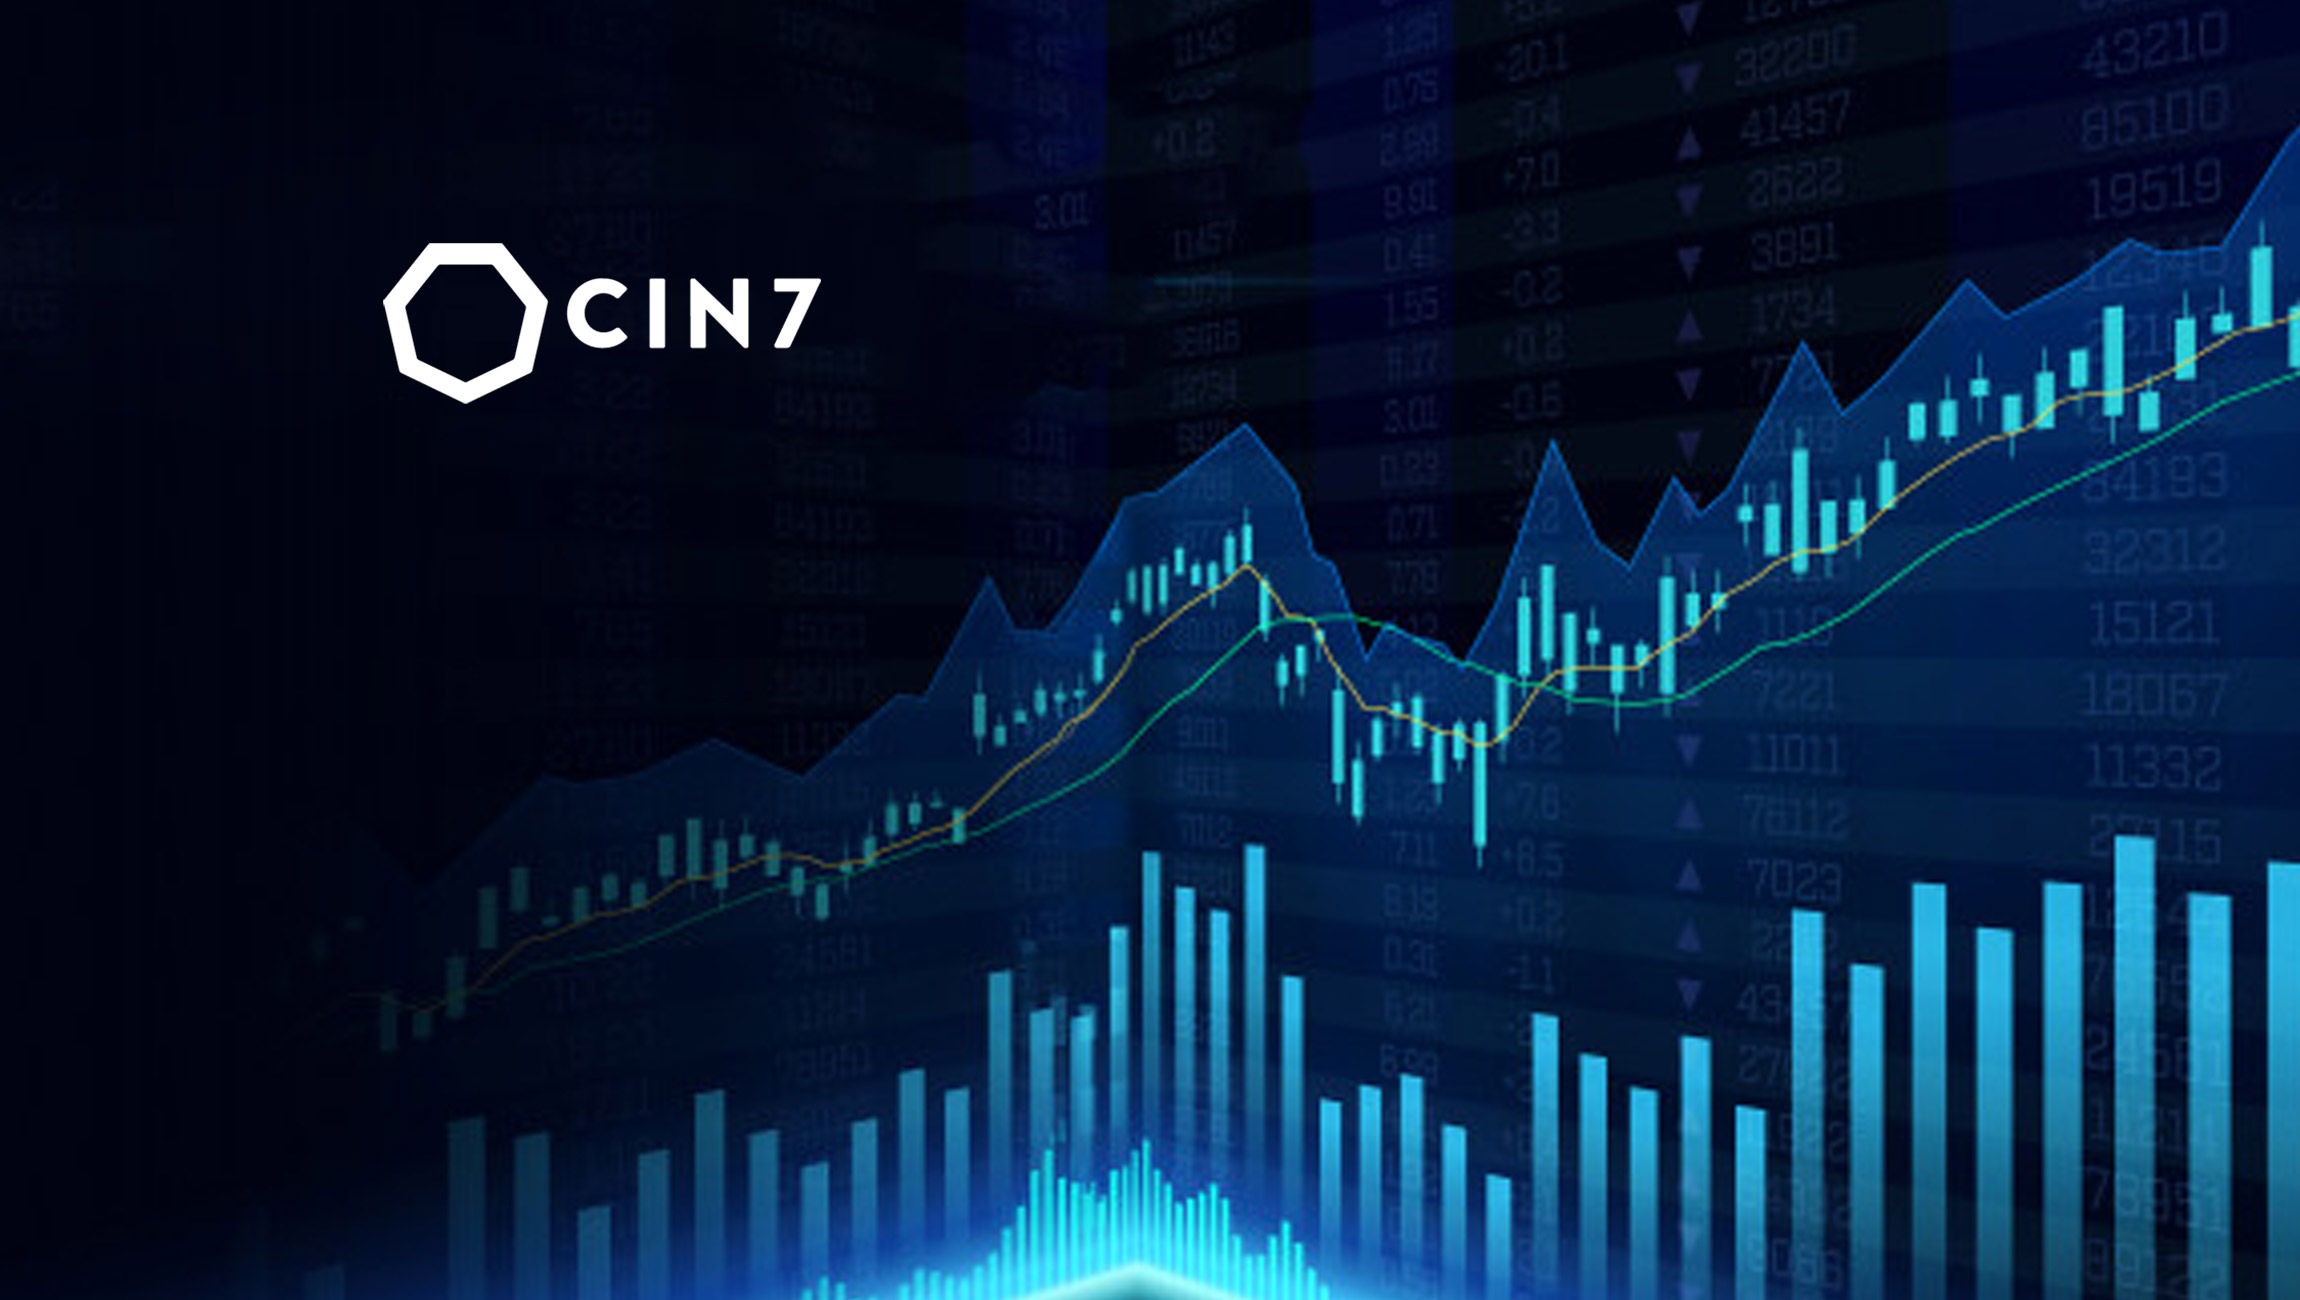 Cin7 Expands in US, Opening Denver Office